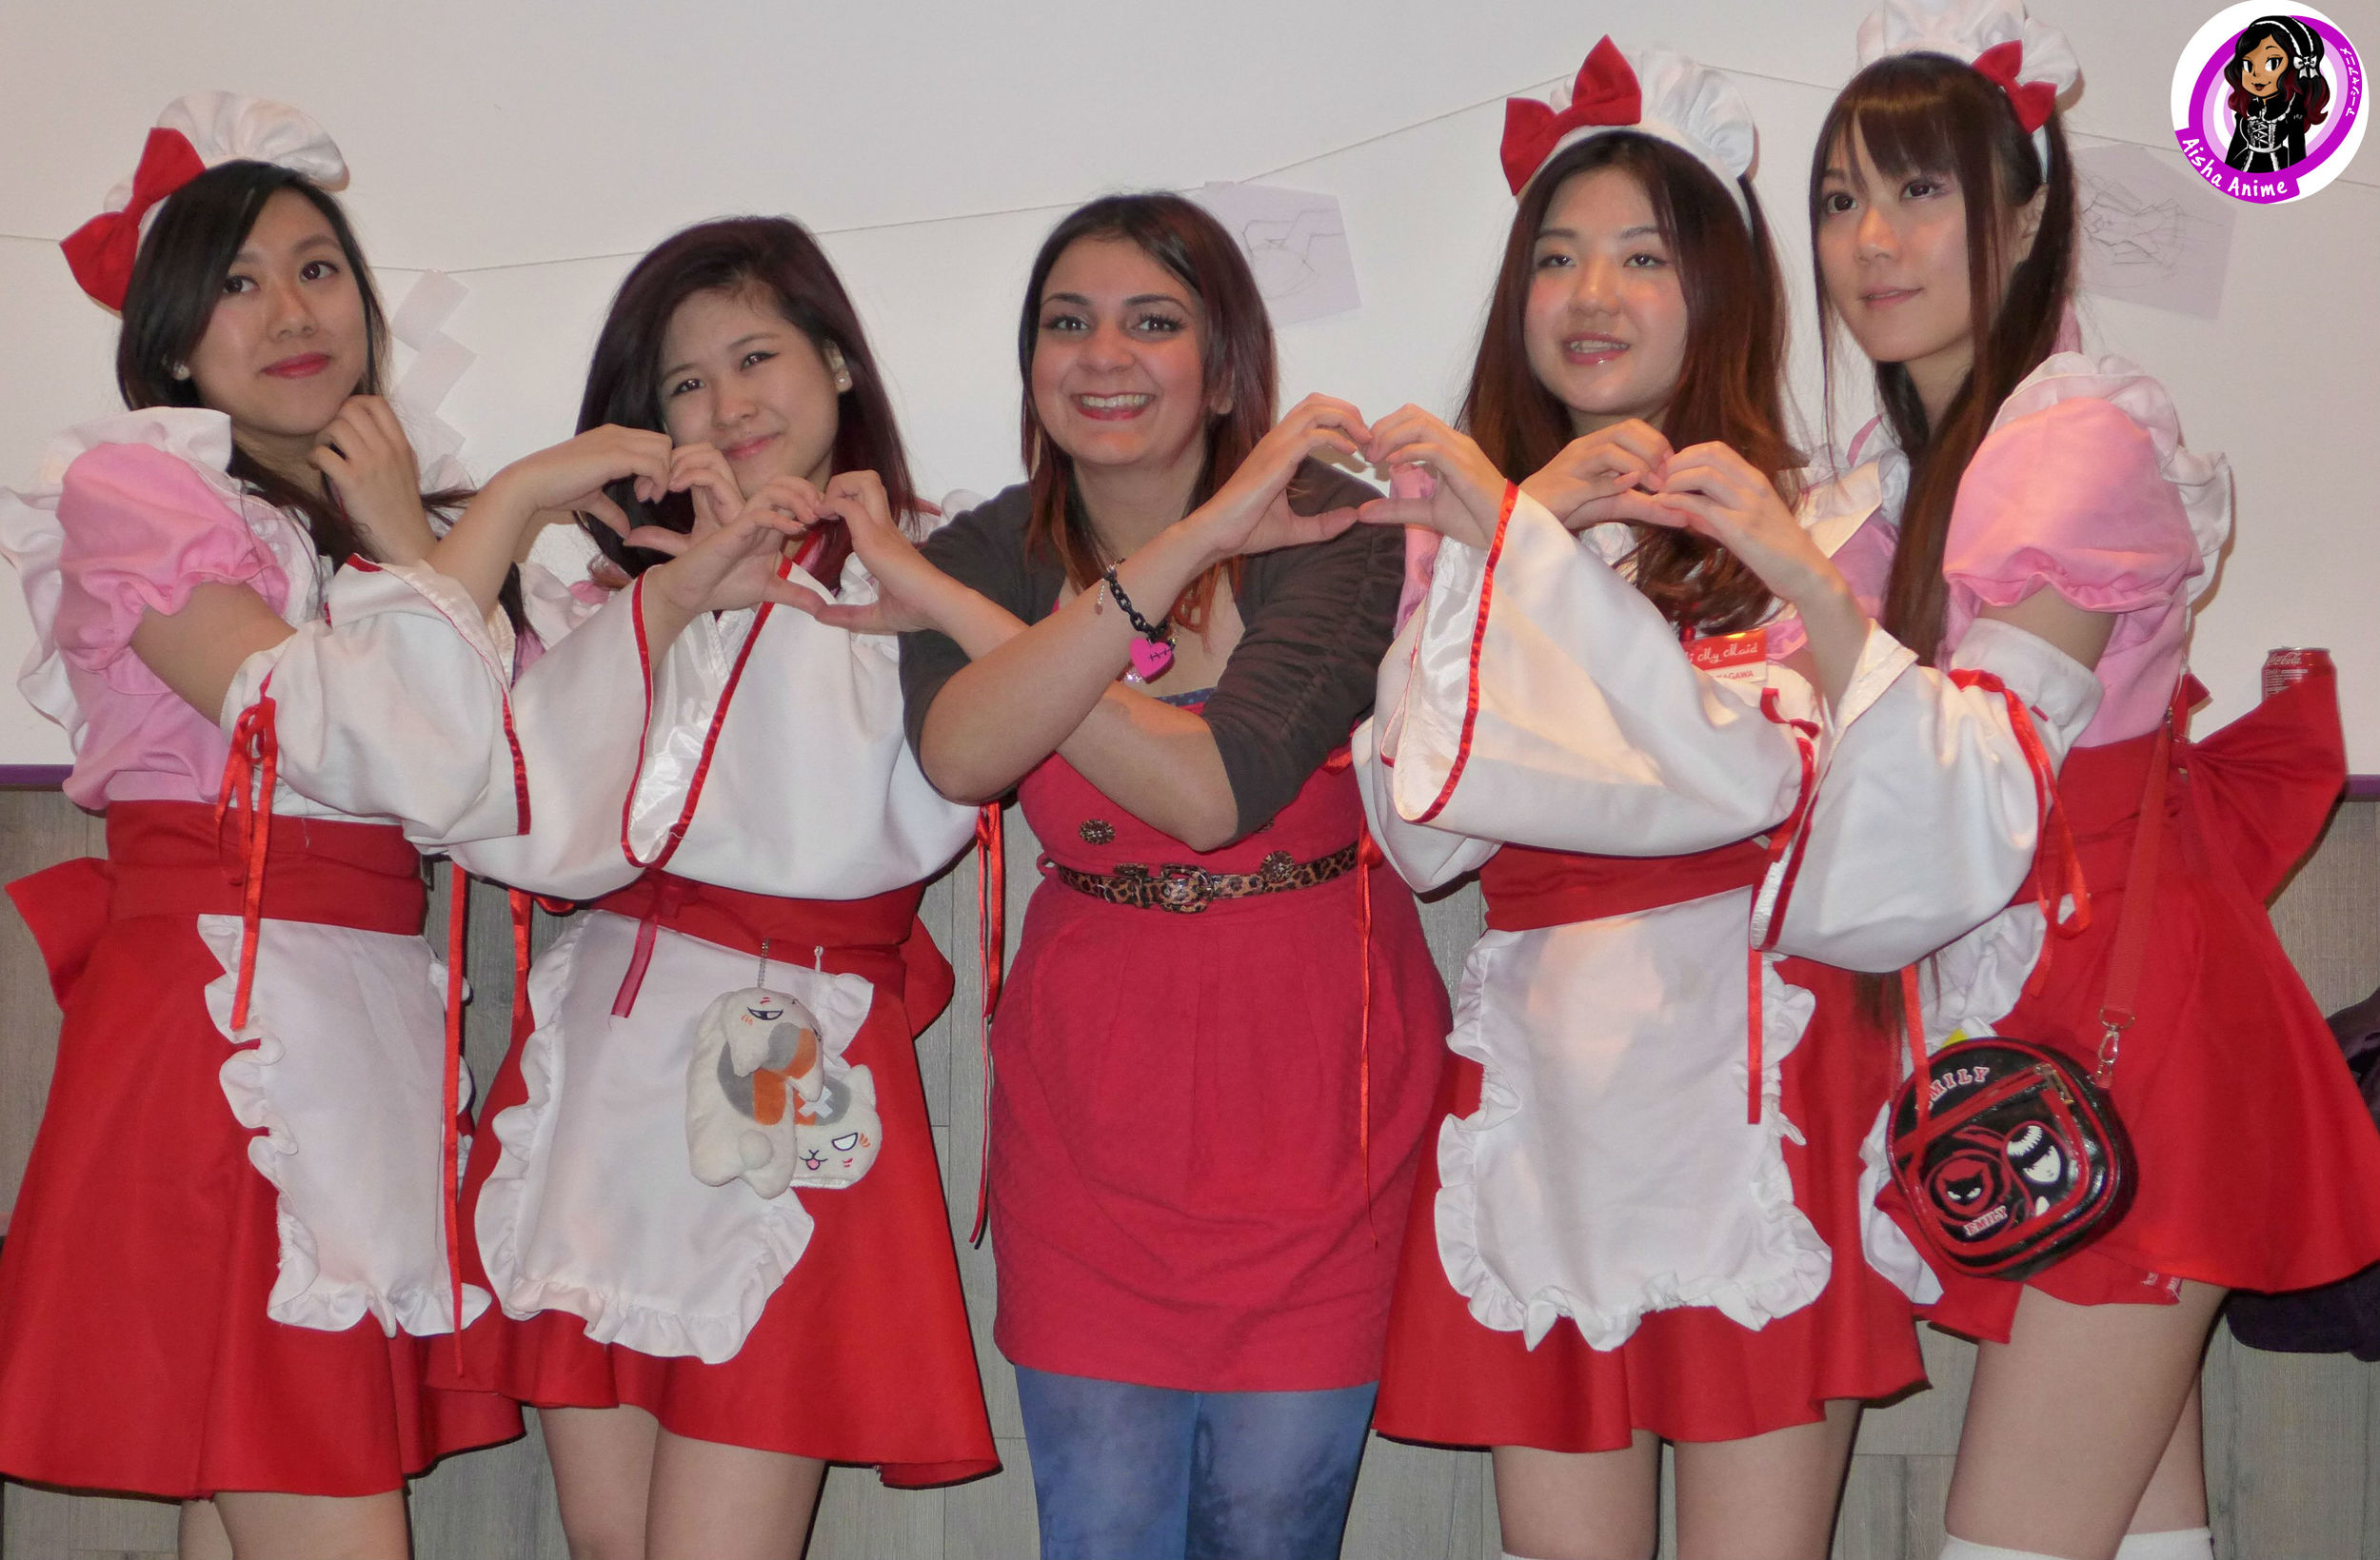 Group photo with the lovely maids